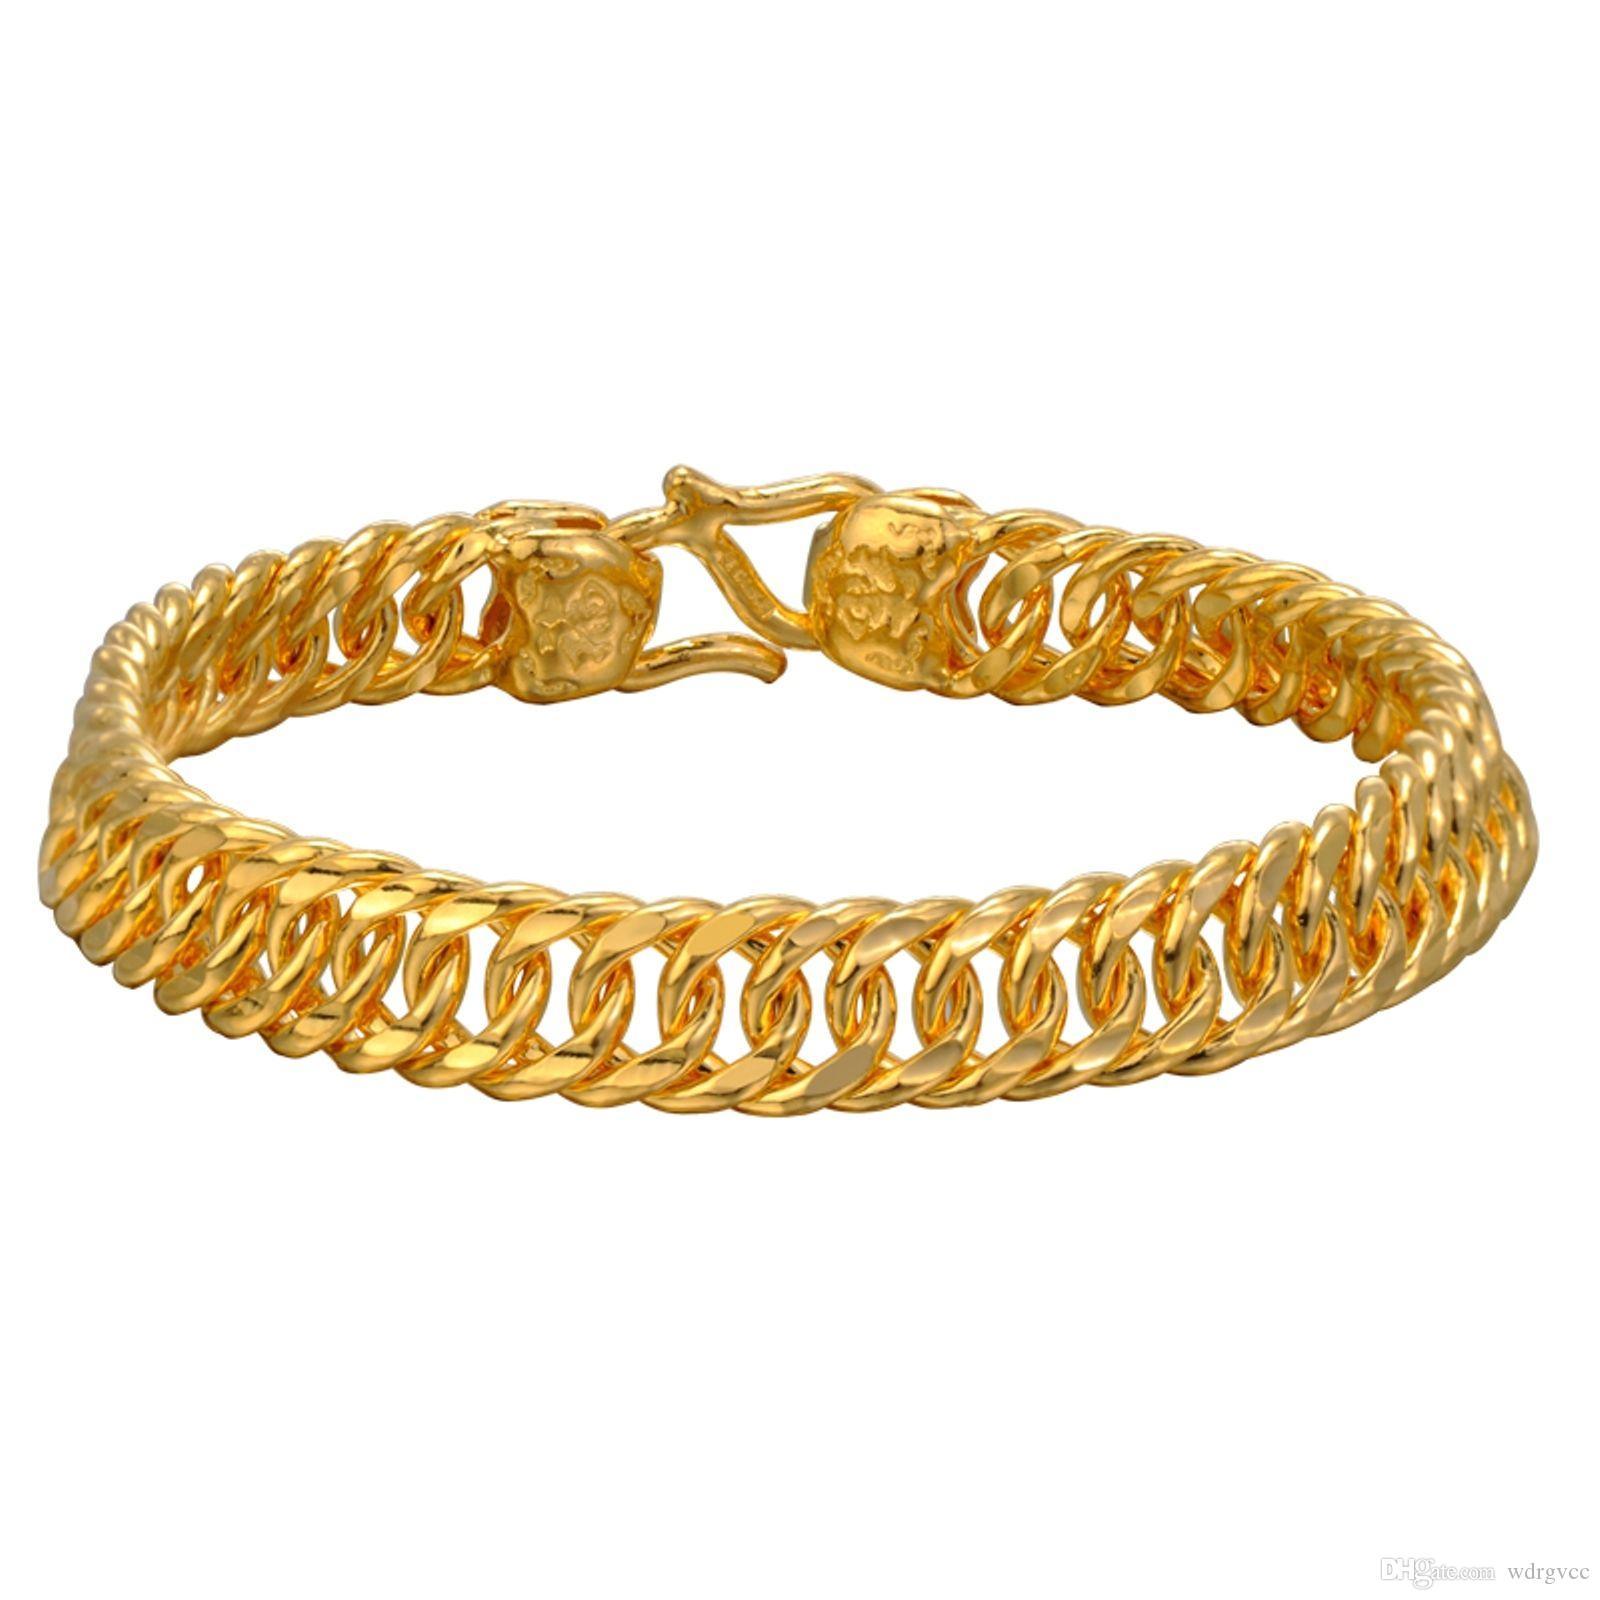 buy at gold cut goldsilver jewelry bracelet bangle forged com online hand without borders